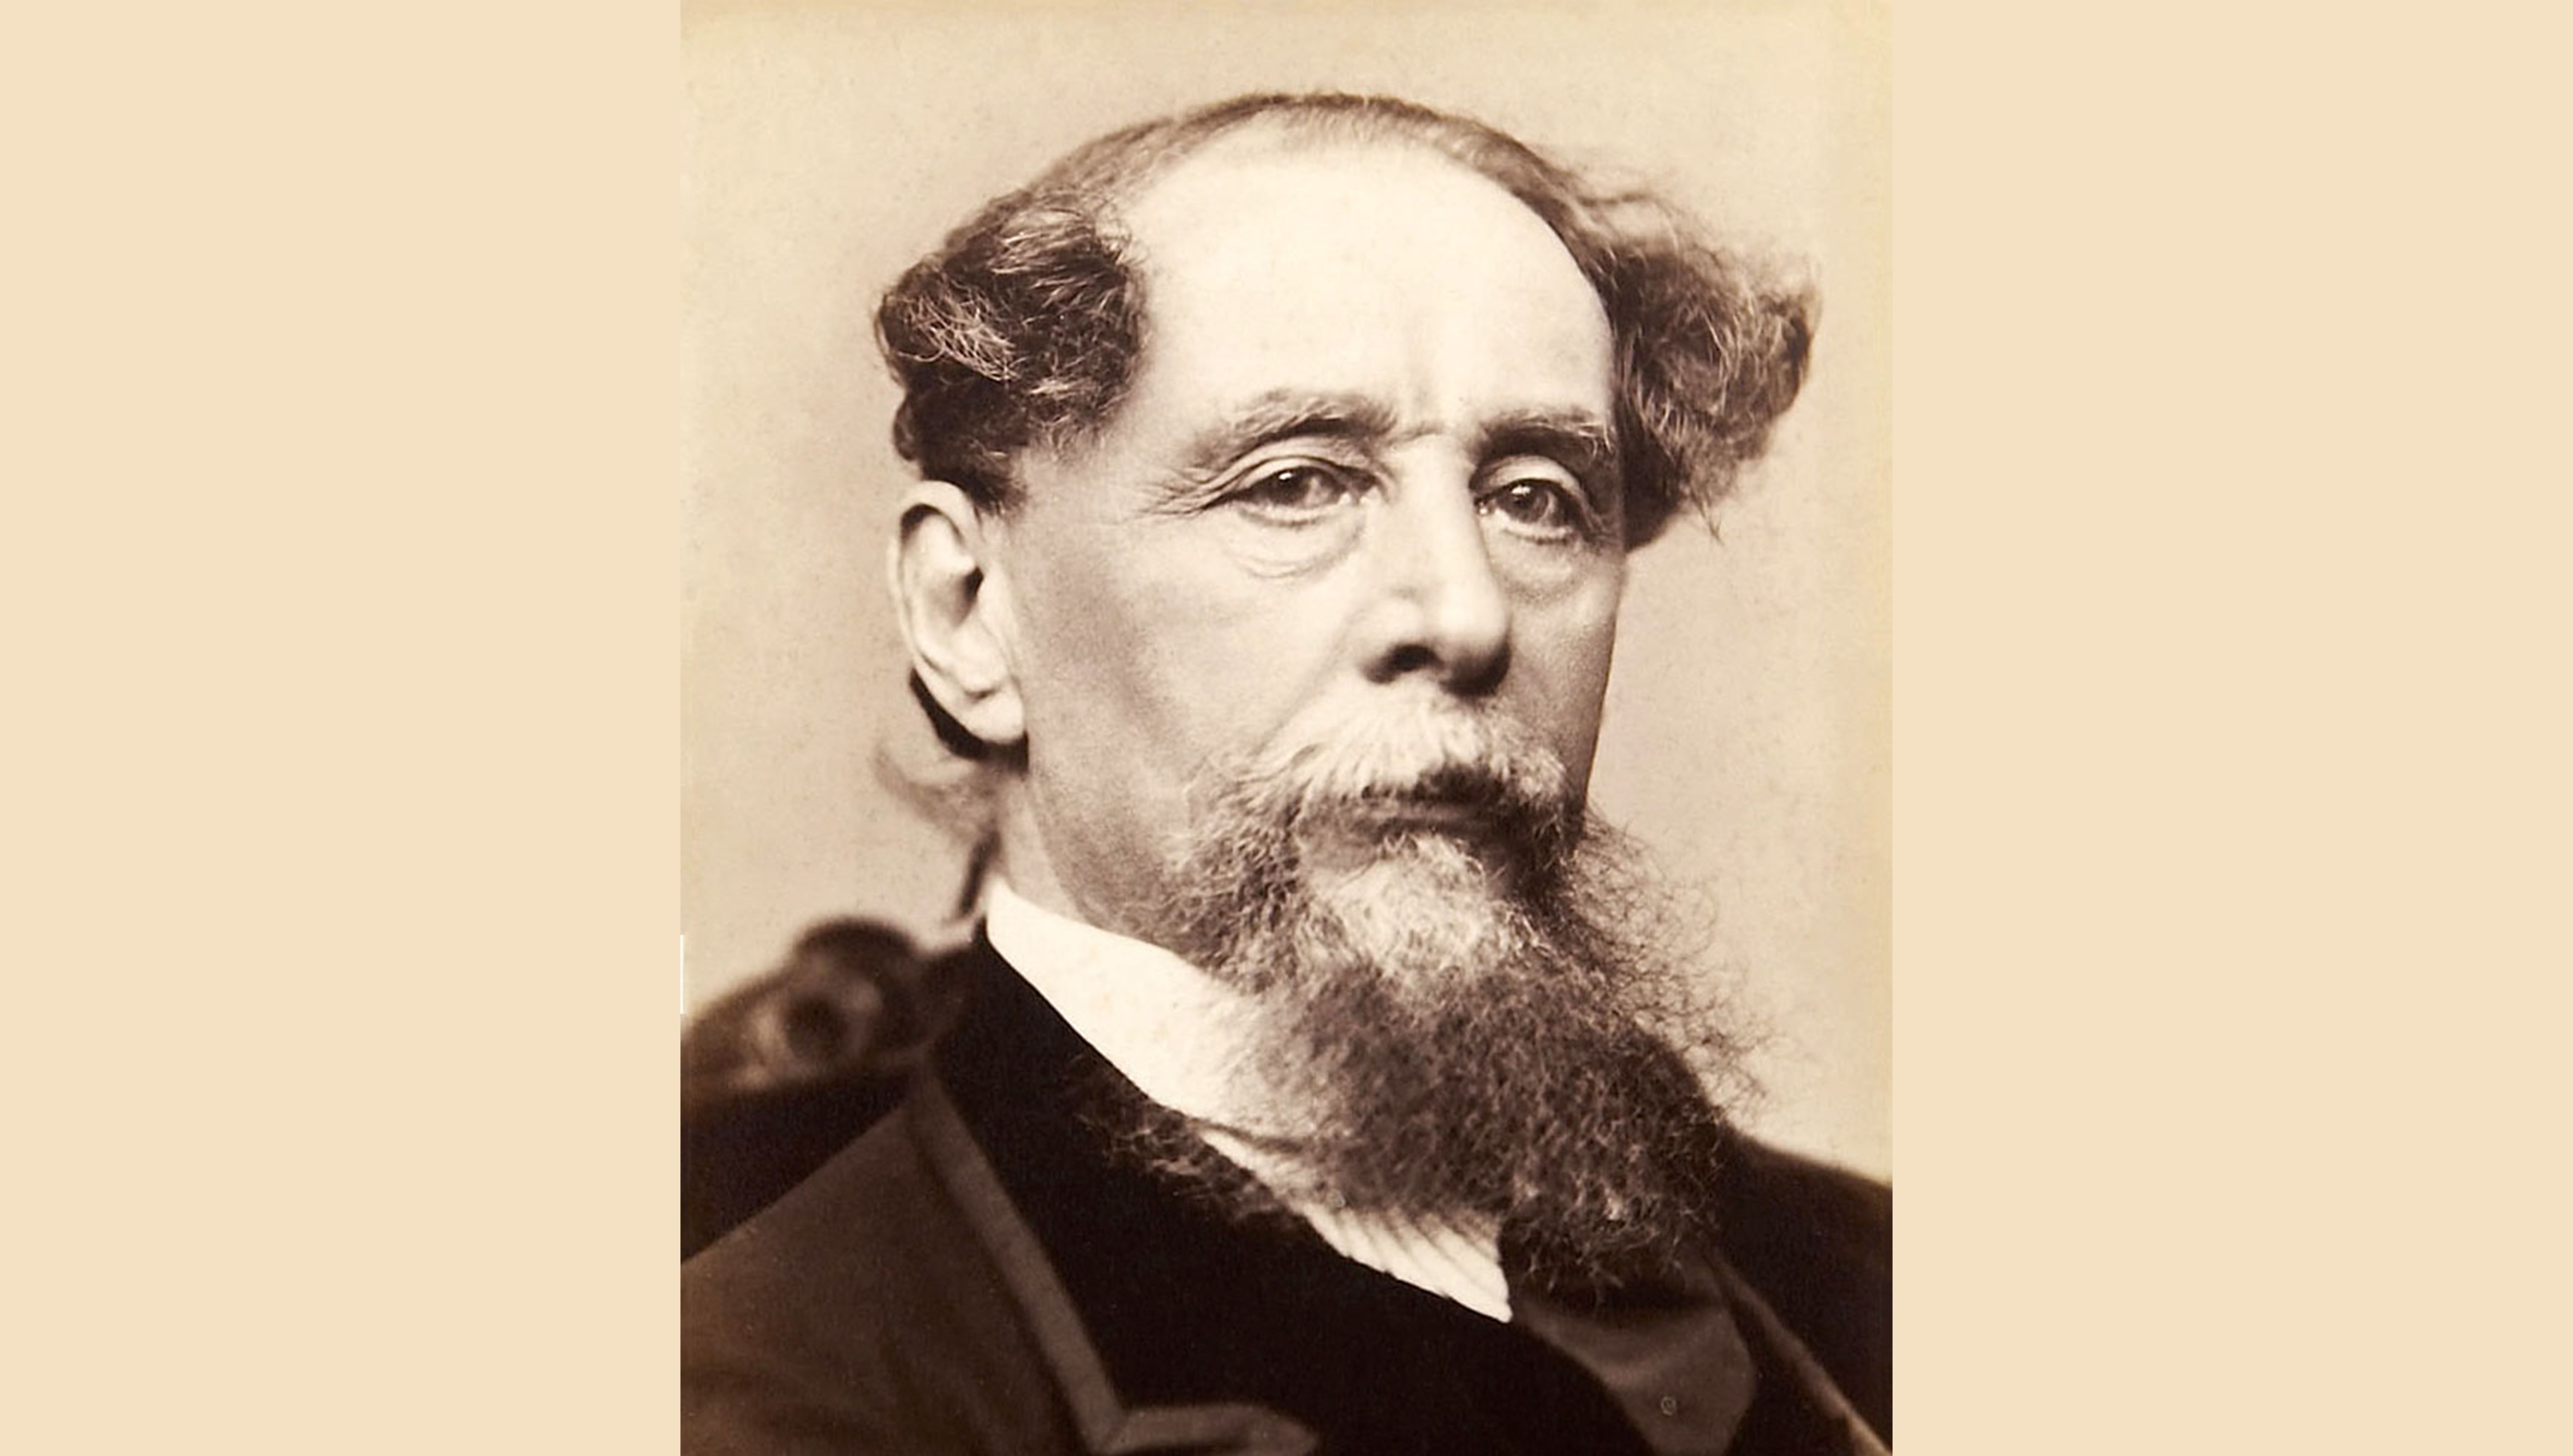 Charles Dickens in later life based on photograph by Jeremiah Gurney (public domain)